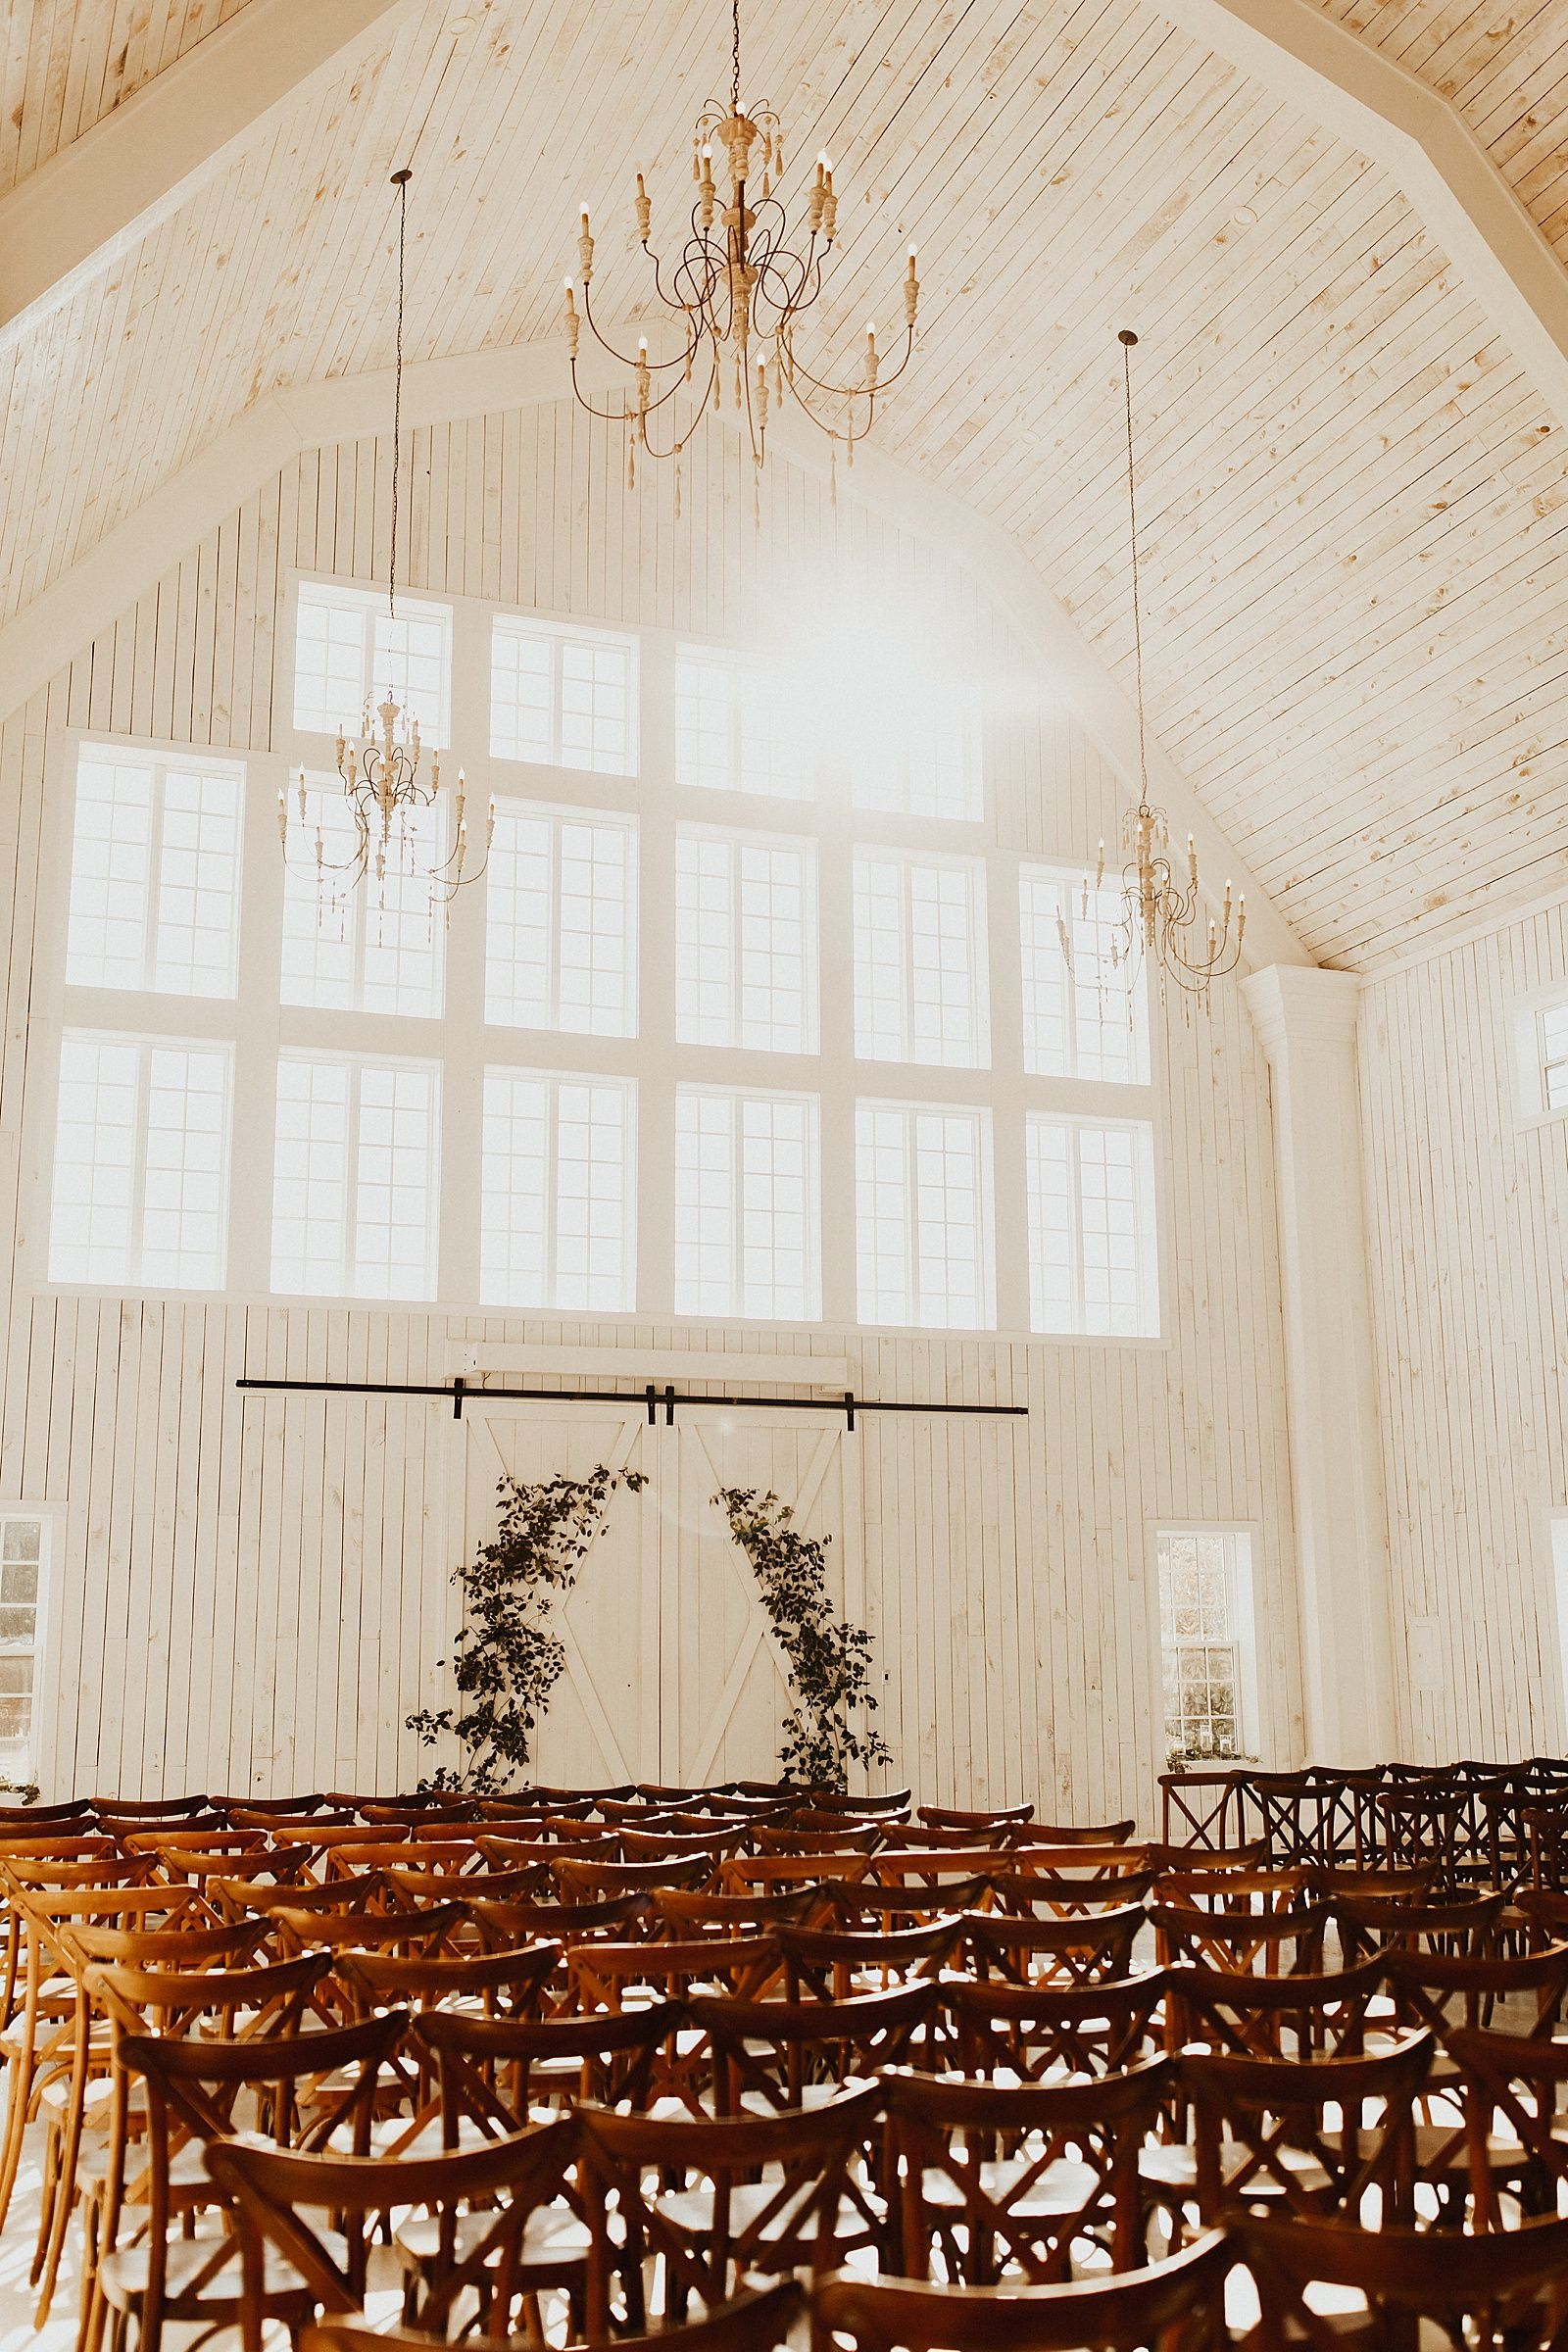 White Sparrow Barn Wedding in Dallas, TX | Thomas + Sarah - Meg Amorette Photography -   11 white wedding Barn ideas